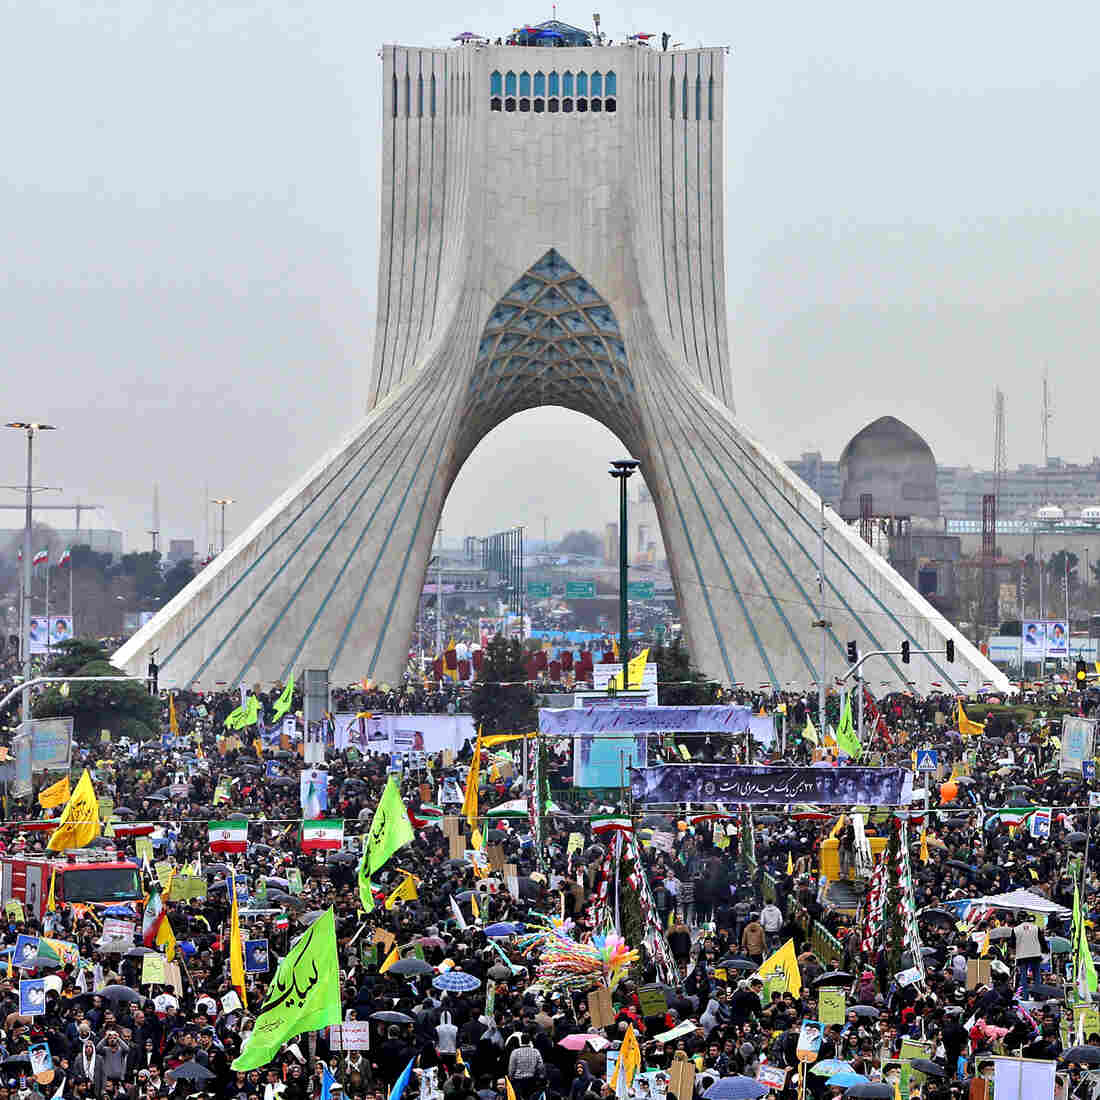 Iranians commemorate the 36th anniversary of the Islamic Revolution near the Azadi Tower in Tehran on Wednesday. While many Iranians would like to reorder relations with the West, there's also plenty of skepticism about whether it will actually happen.